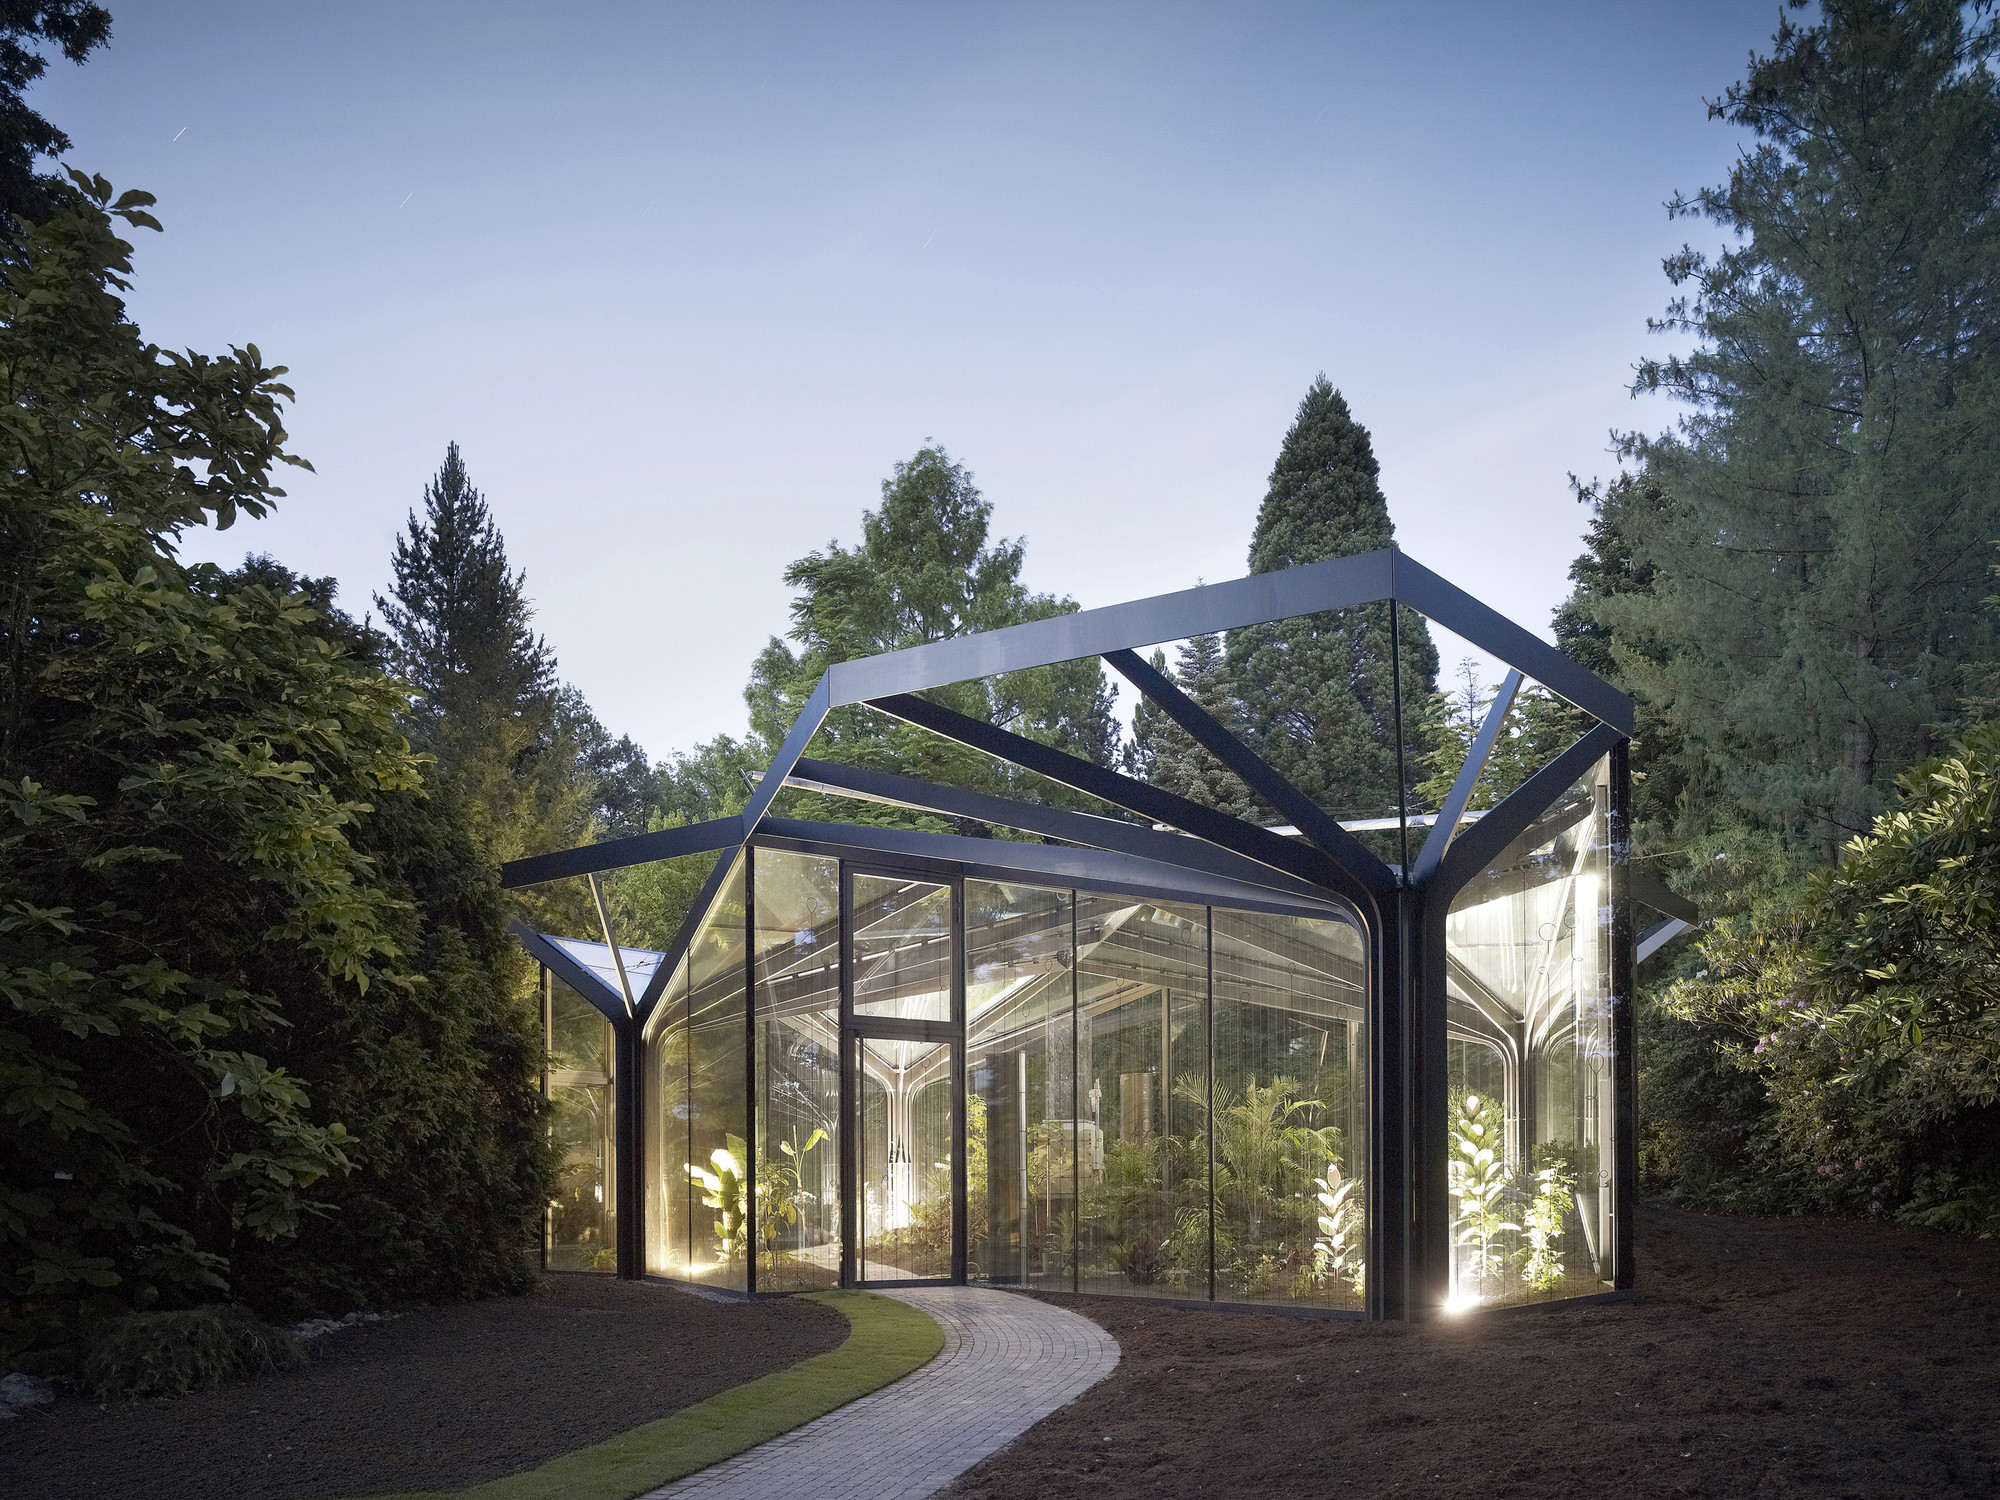 Greenhouse botanical garden grueningen ida archdaily for Botanical garden design